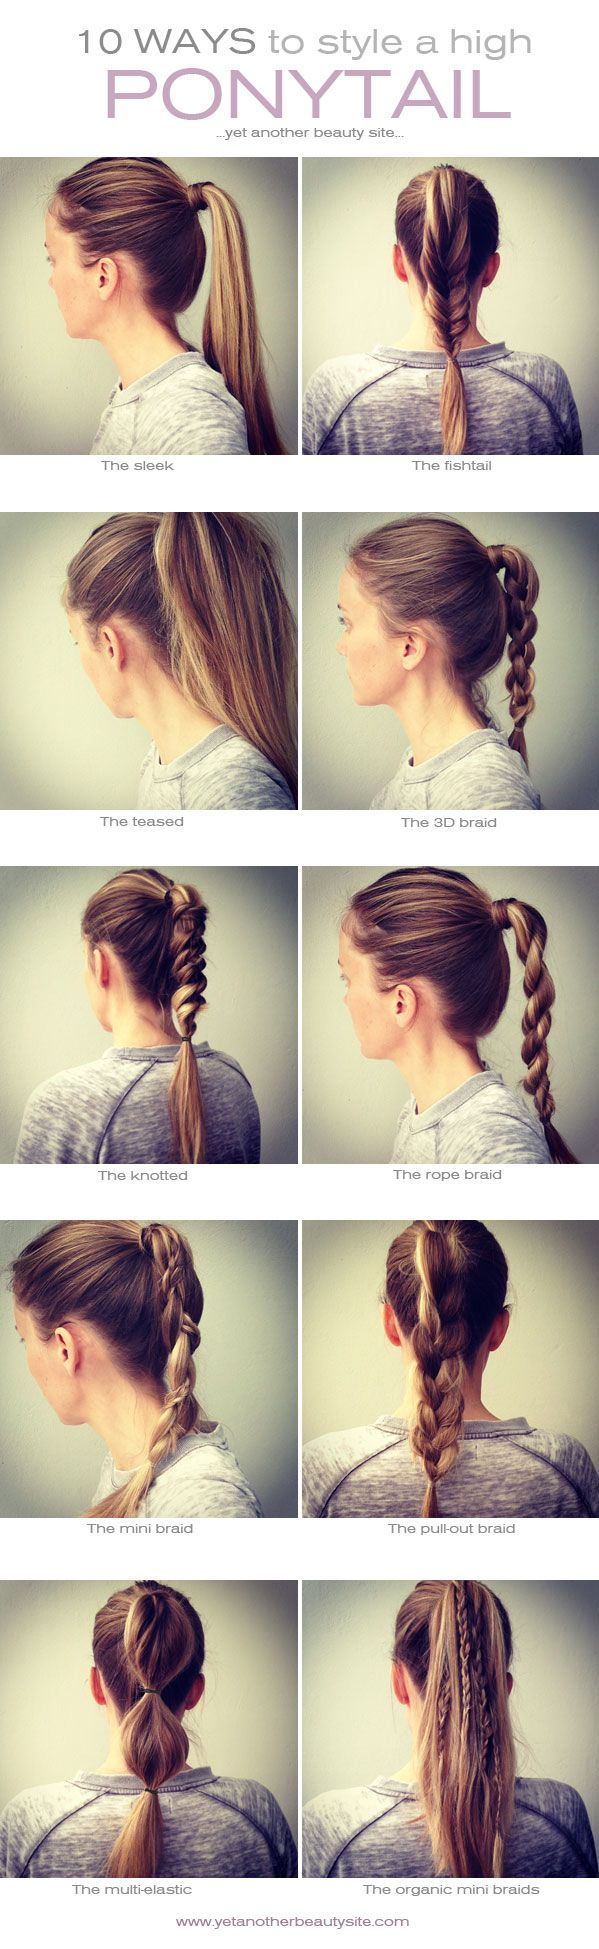 10 Ways to Style A Ponytail~ Tutorials